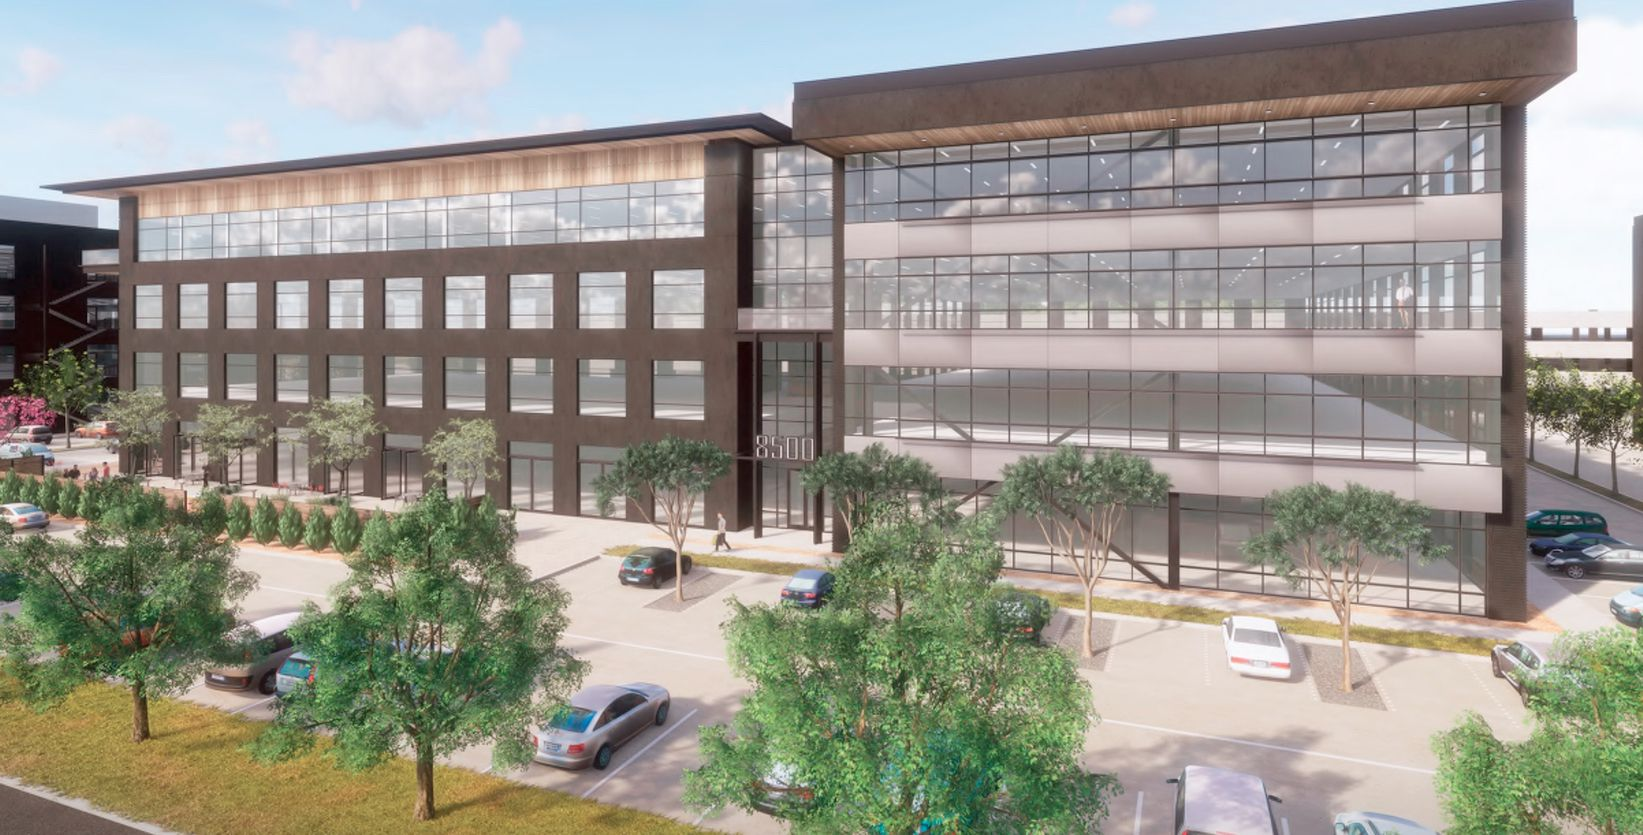 The first phase of The Braun on Belt Line project will be a 4-story building.